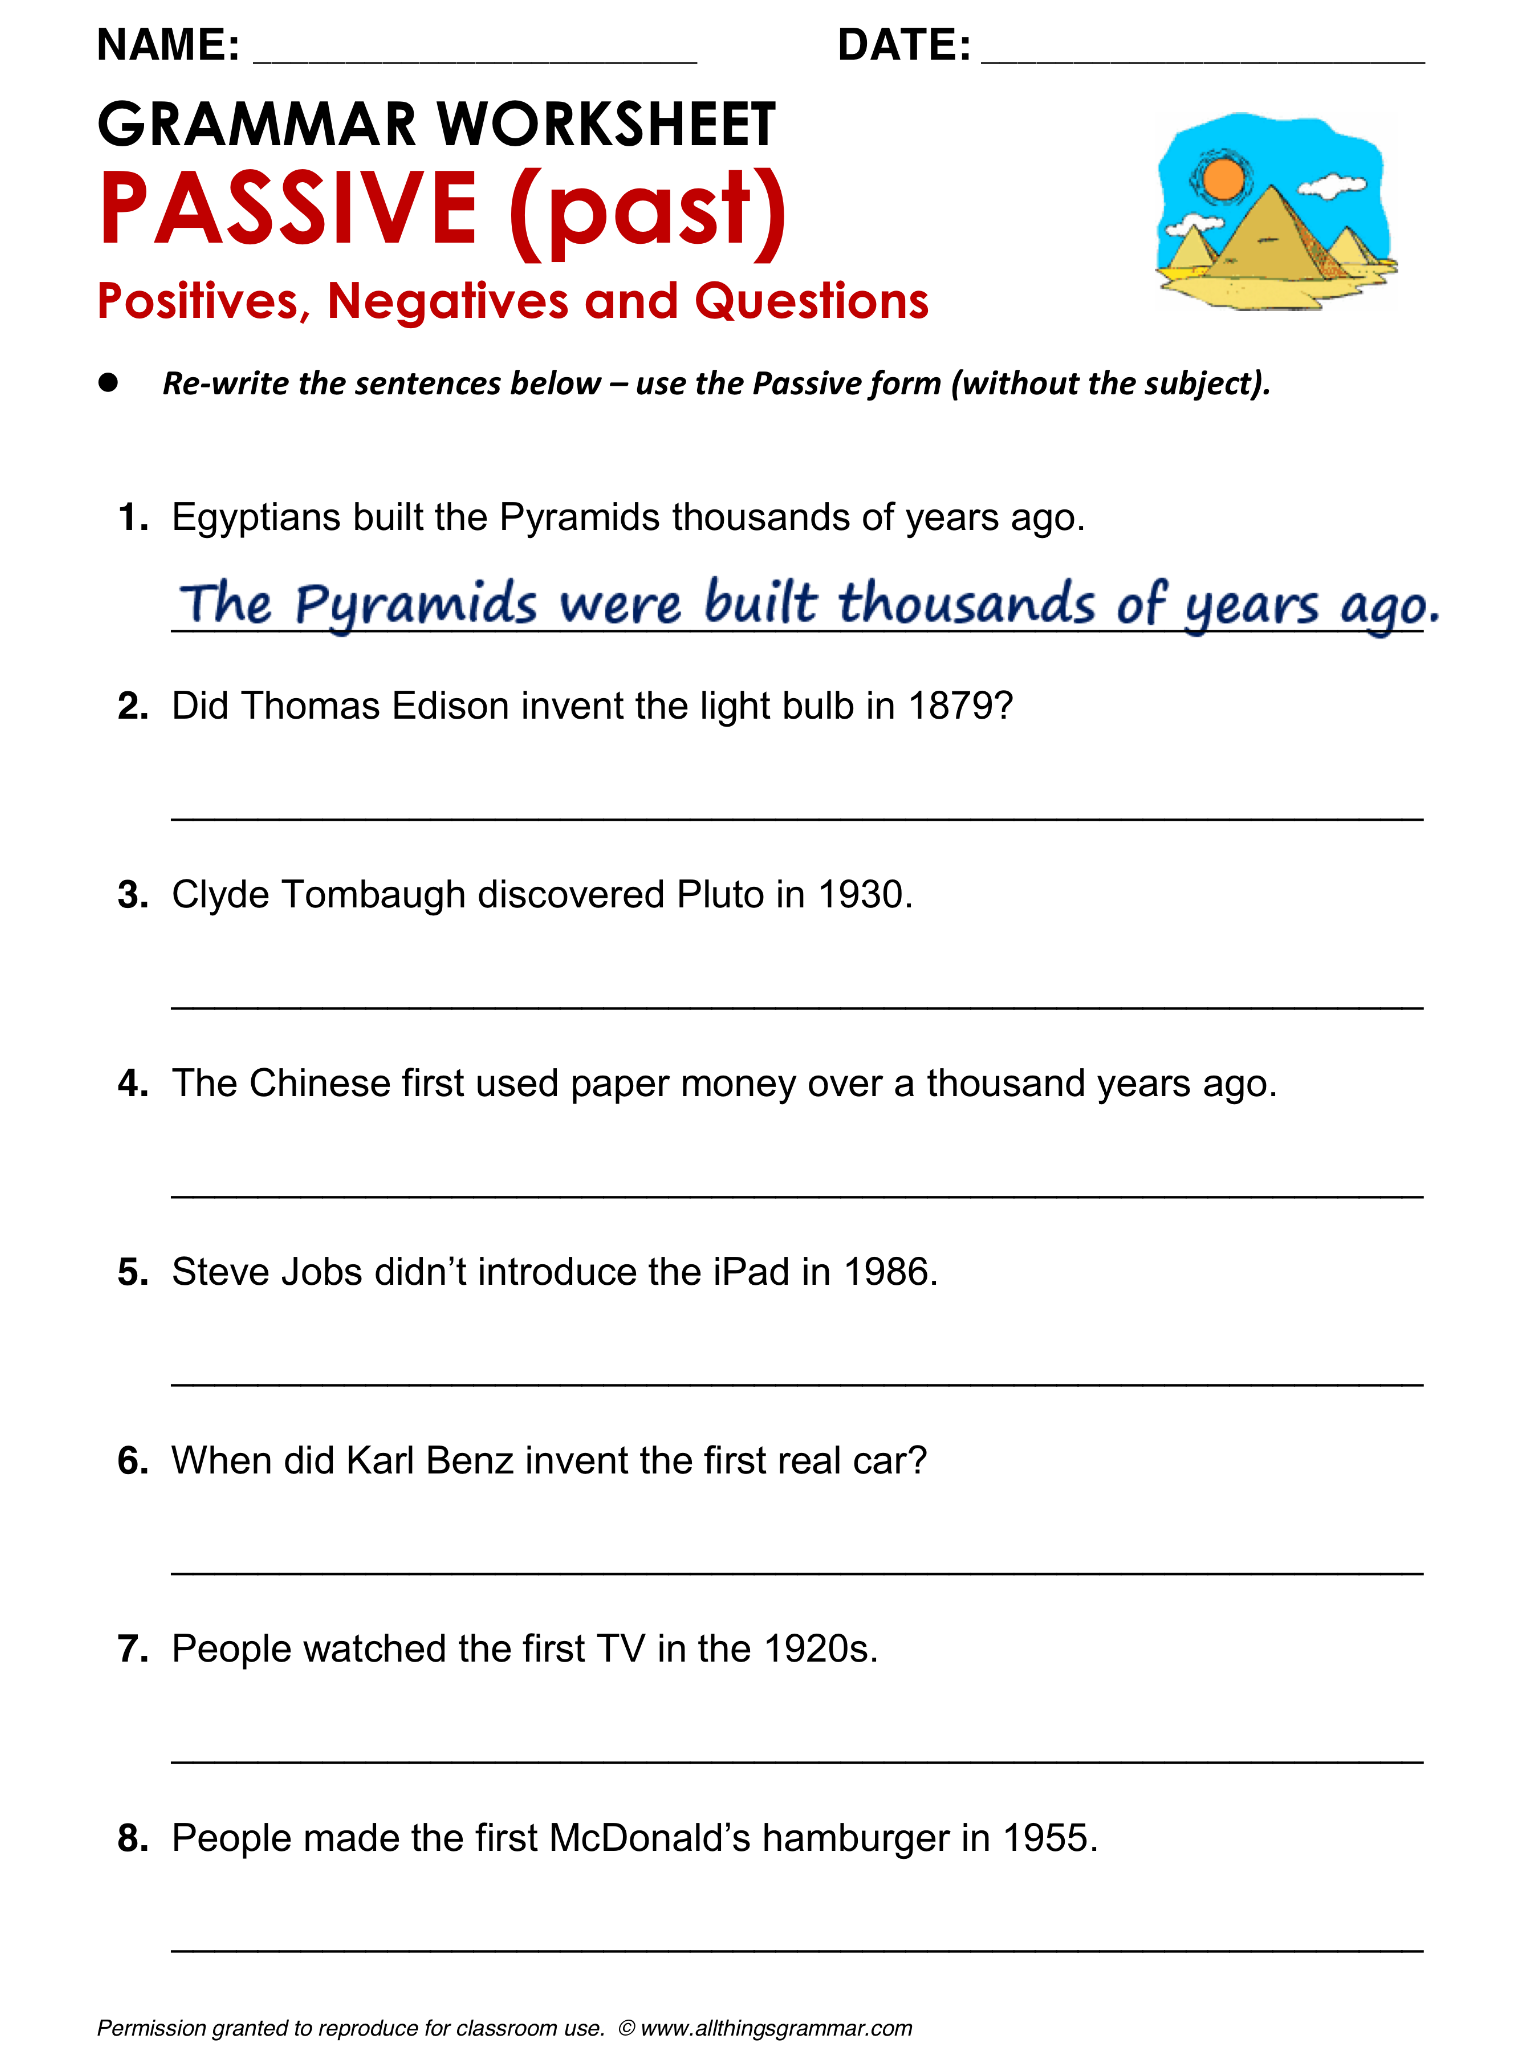 English Grammar Worksheet, PASSIVE (past) Positives, Negatives and ...